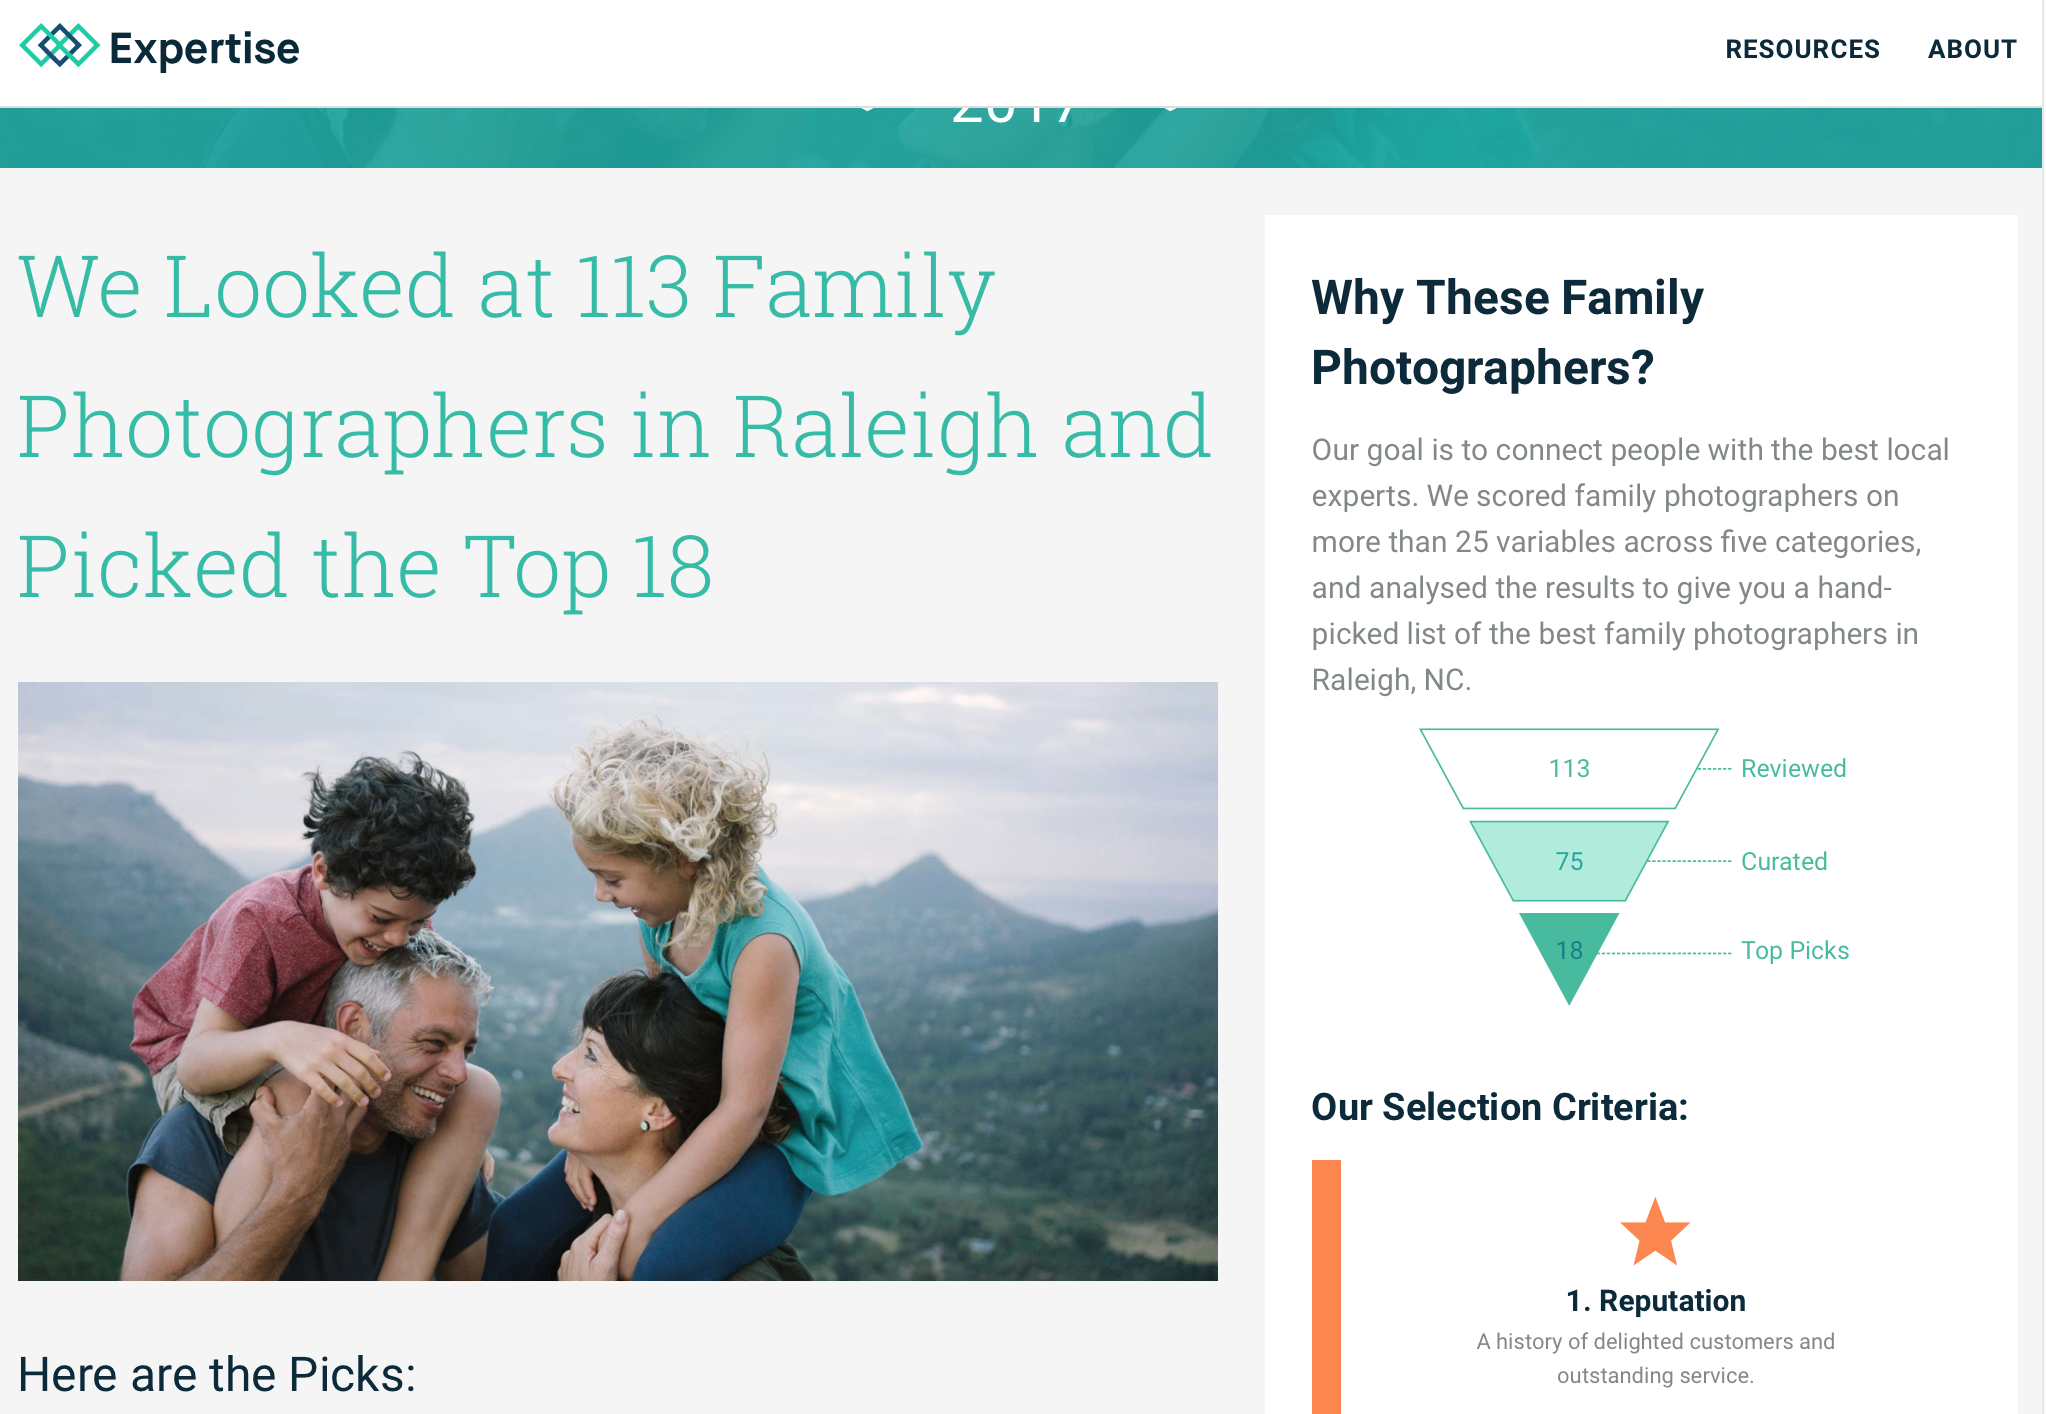 Top 18 of 113 Family Photographers